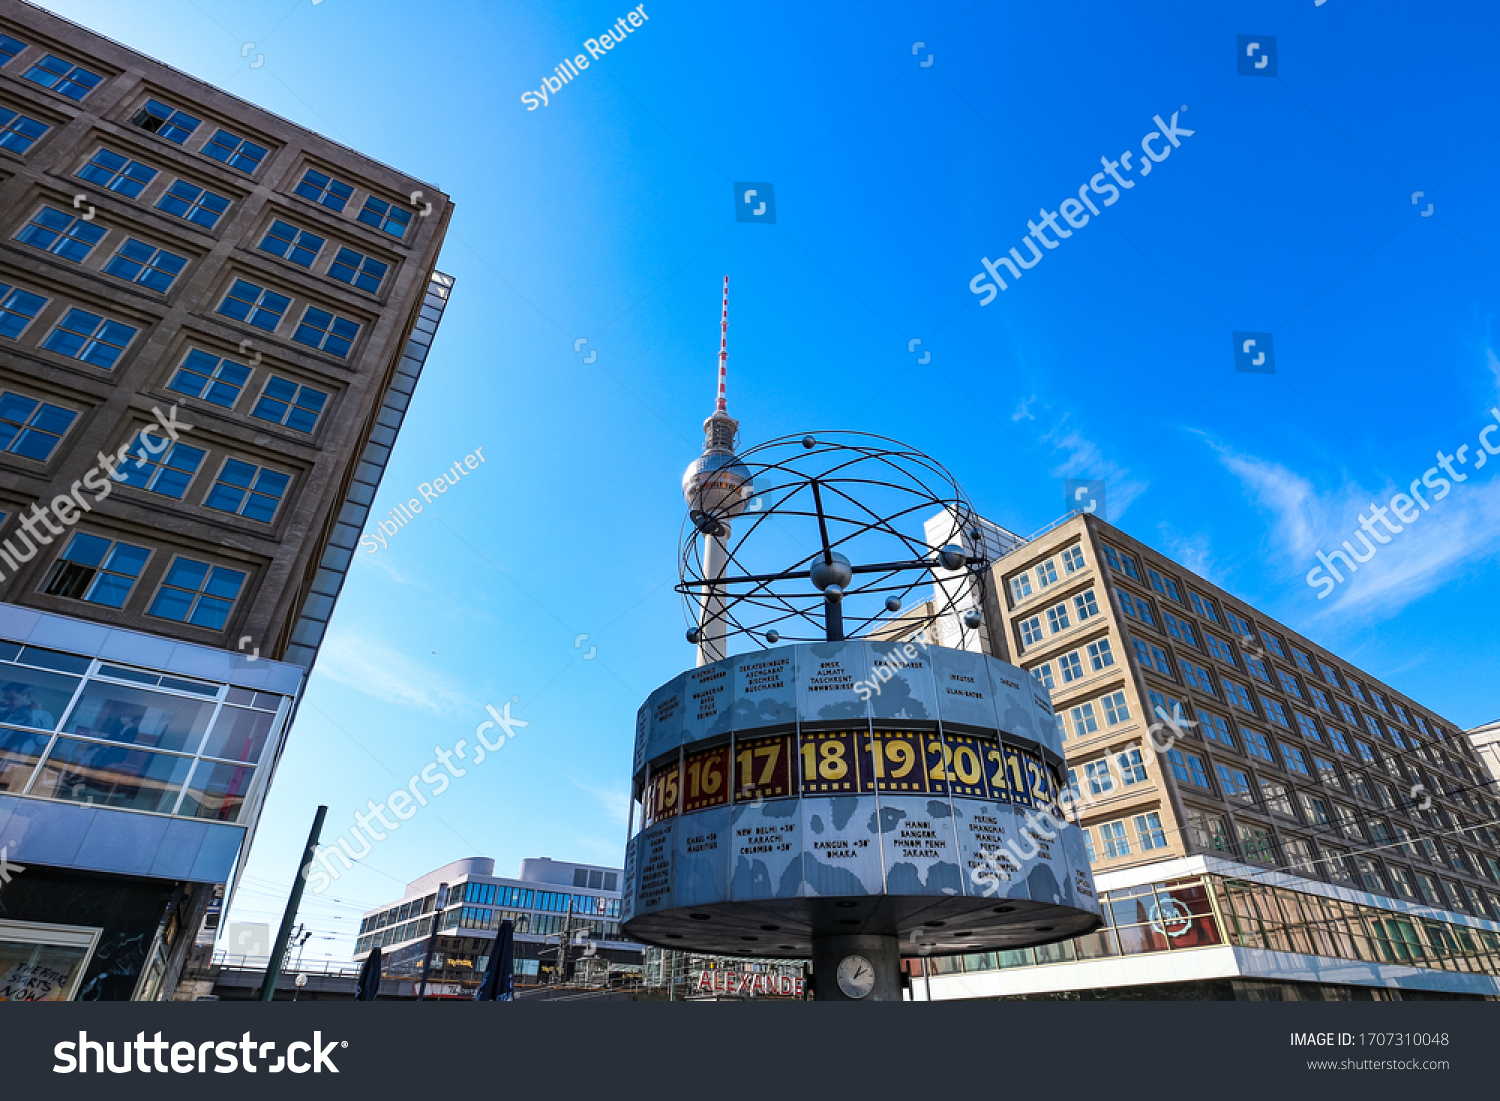 stock-photo-berlin-germany-march-world-c